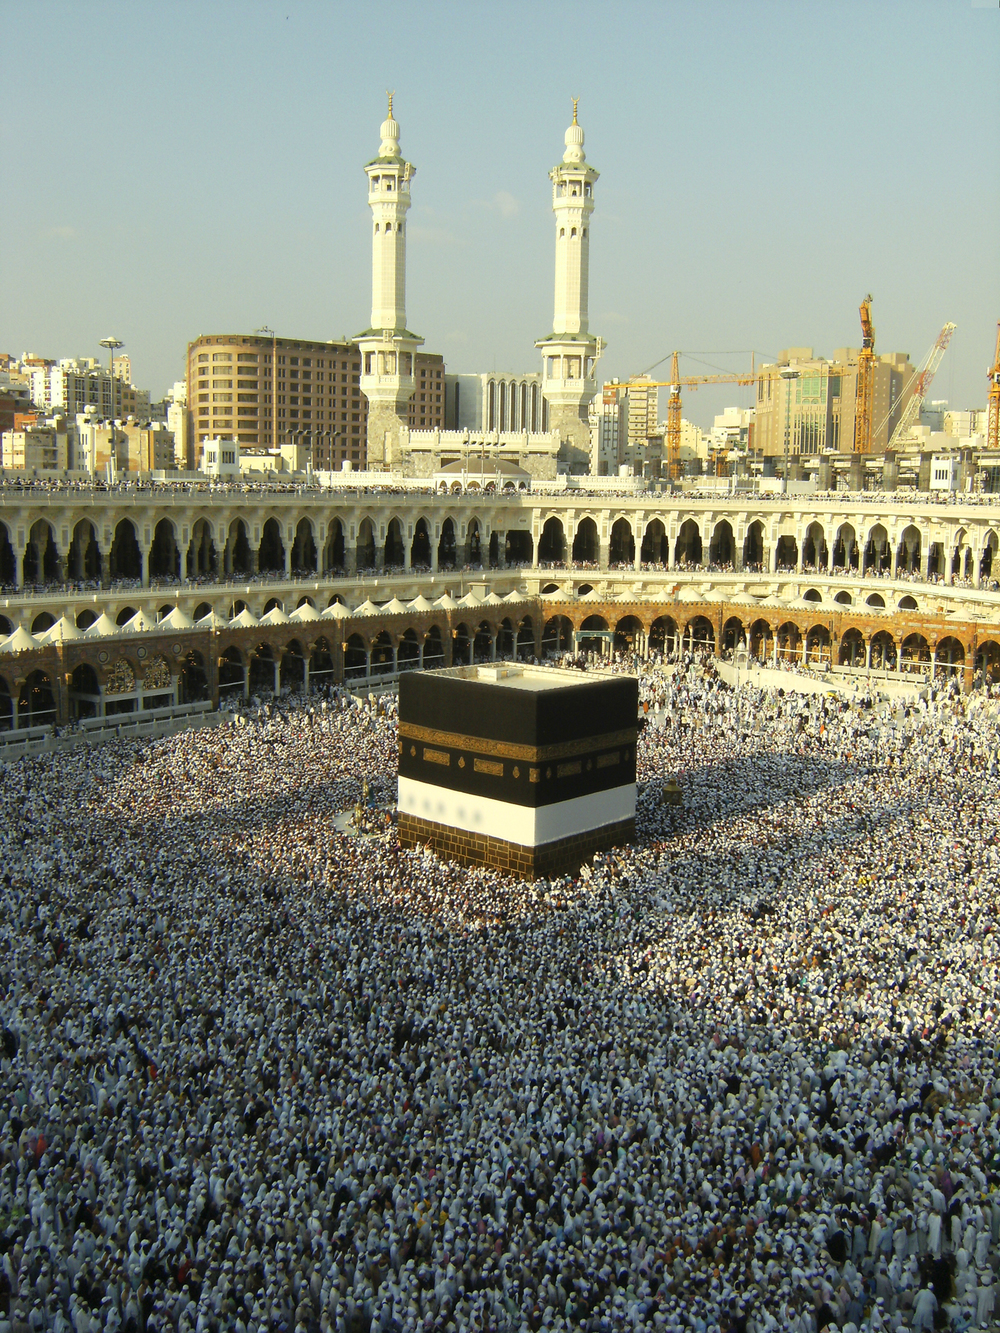 The Kabba during the Hajj